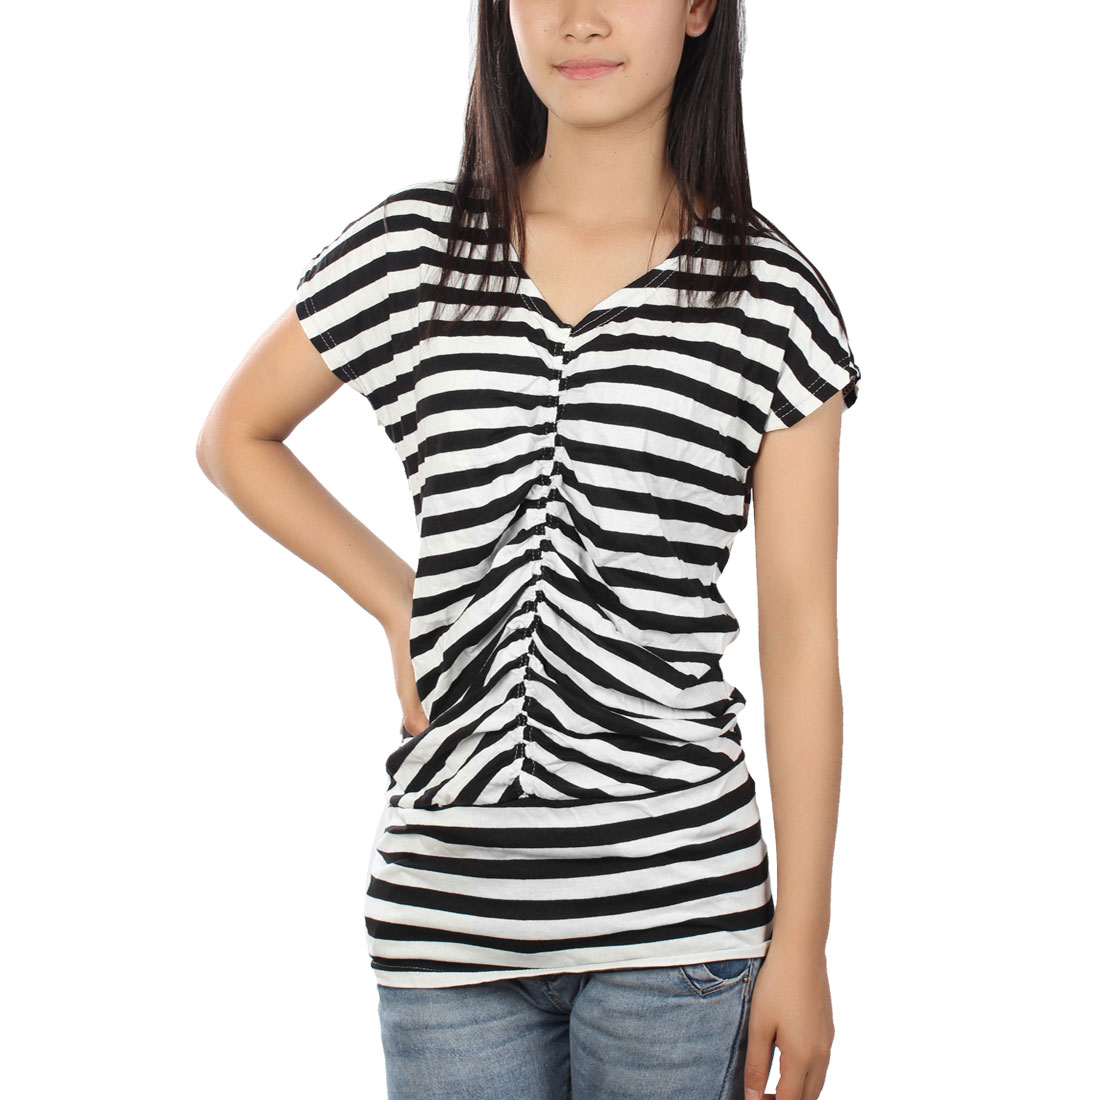 Woman Black White Stripes Pattern Ruffled Stylish Leisure T-Shirt XS